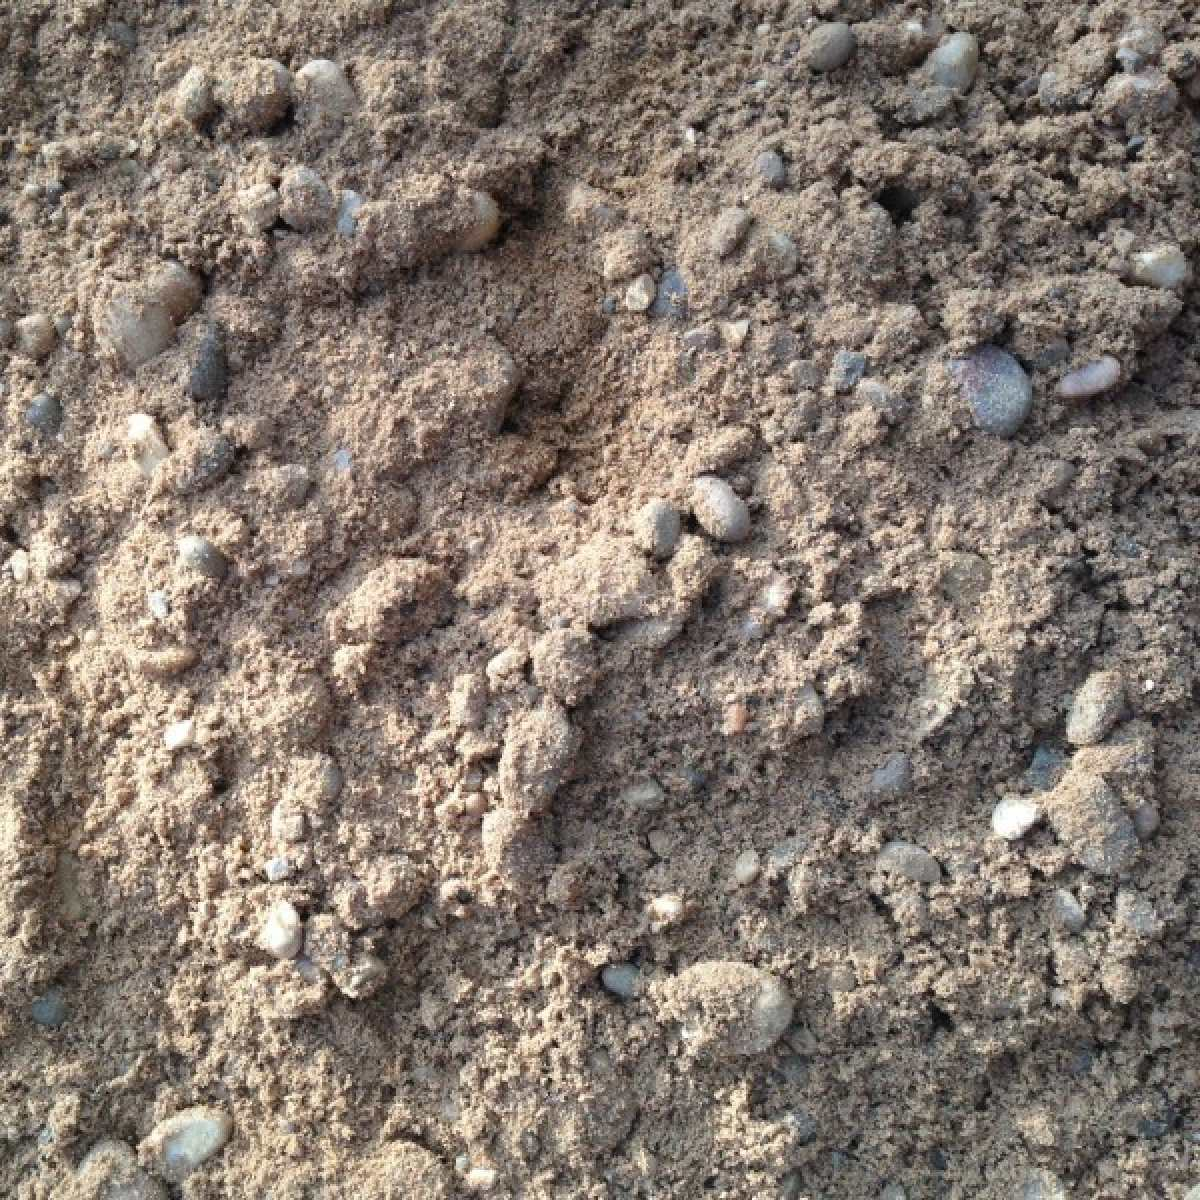 20mm ballast 2 Image by Websters Timber